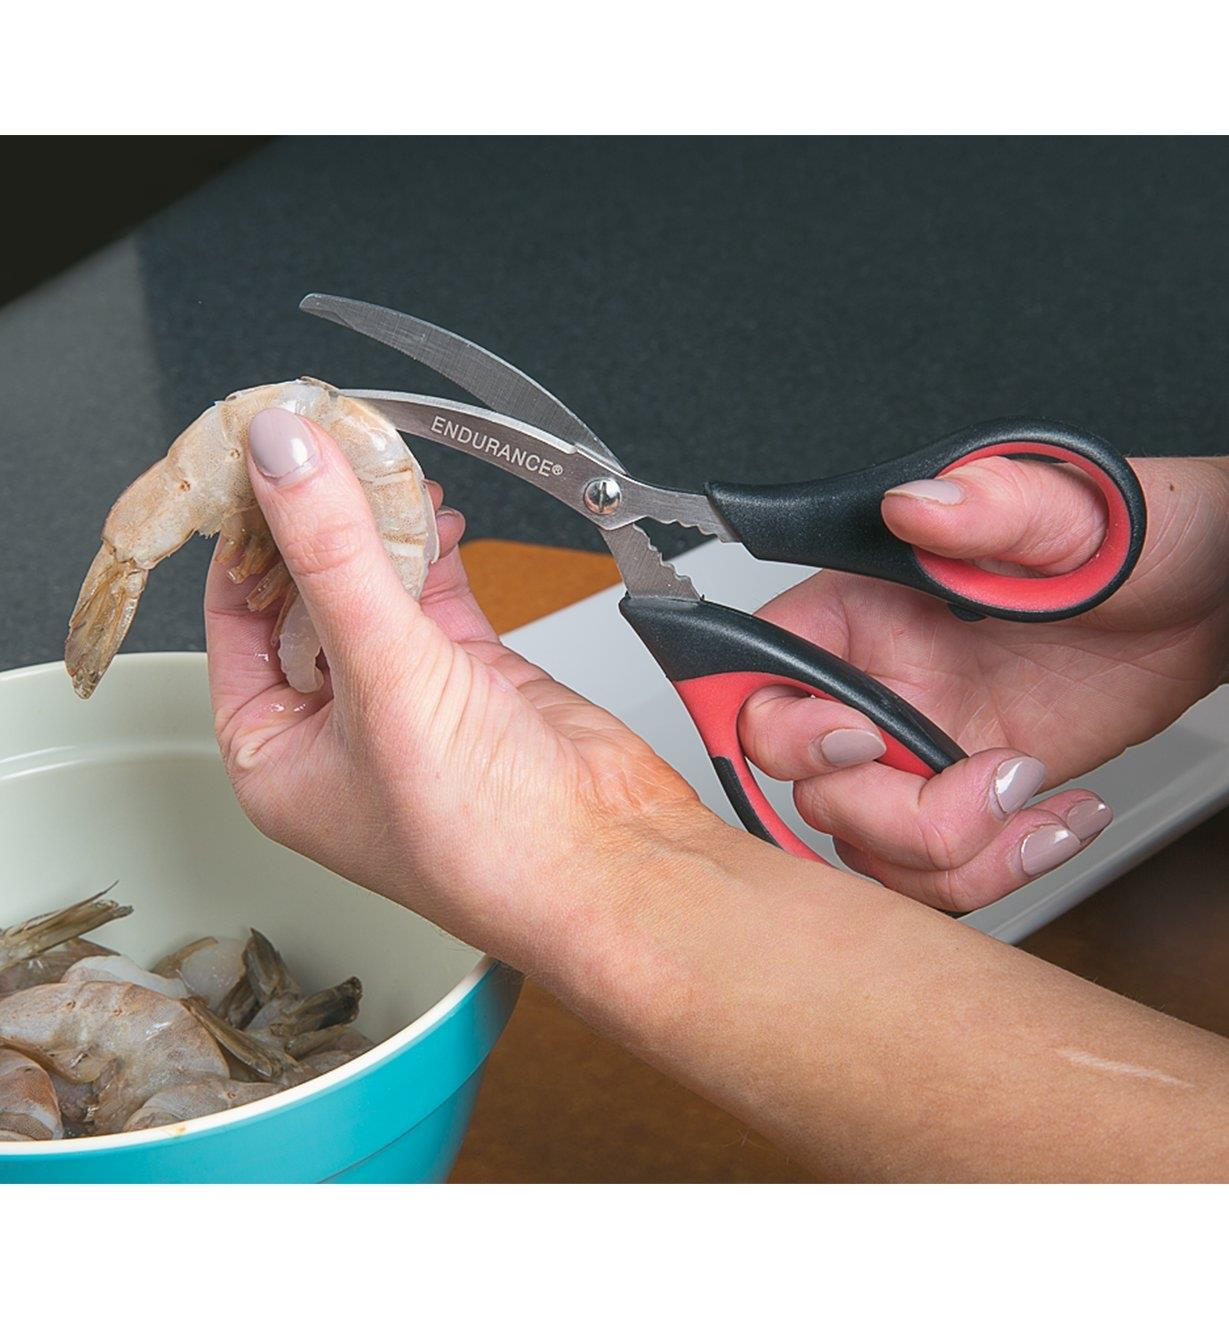 Cutting the shell of a shrimp with Seafood Scissors